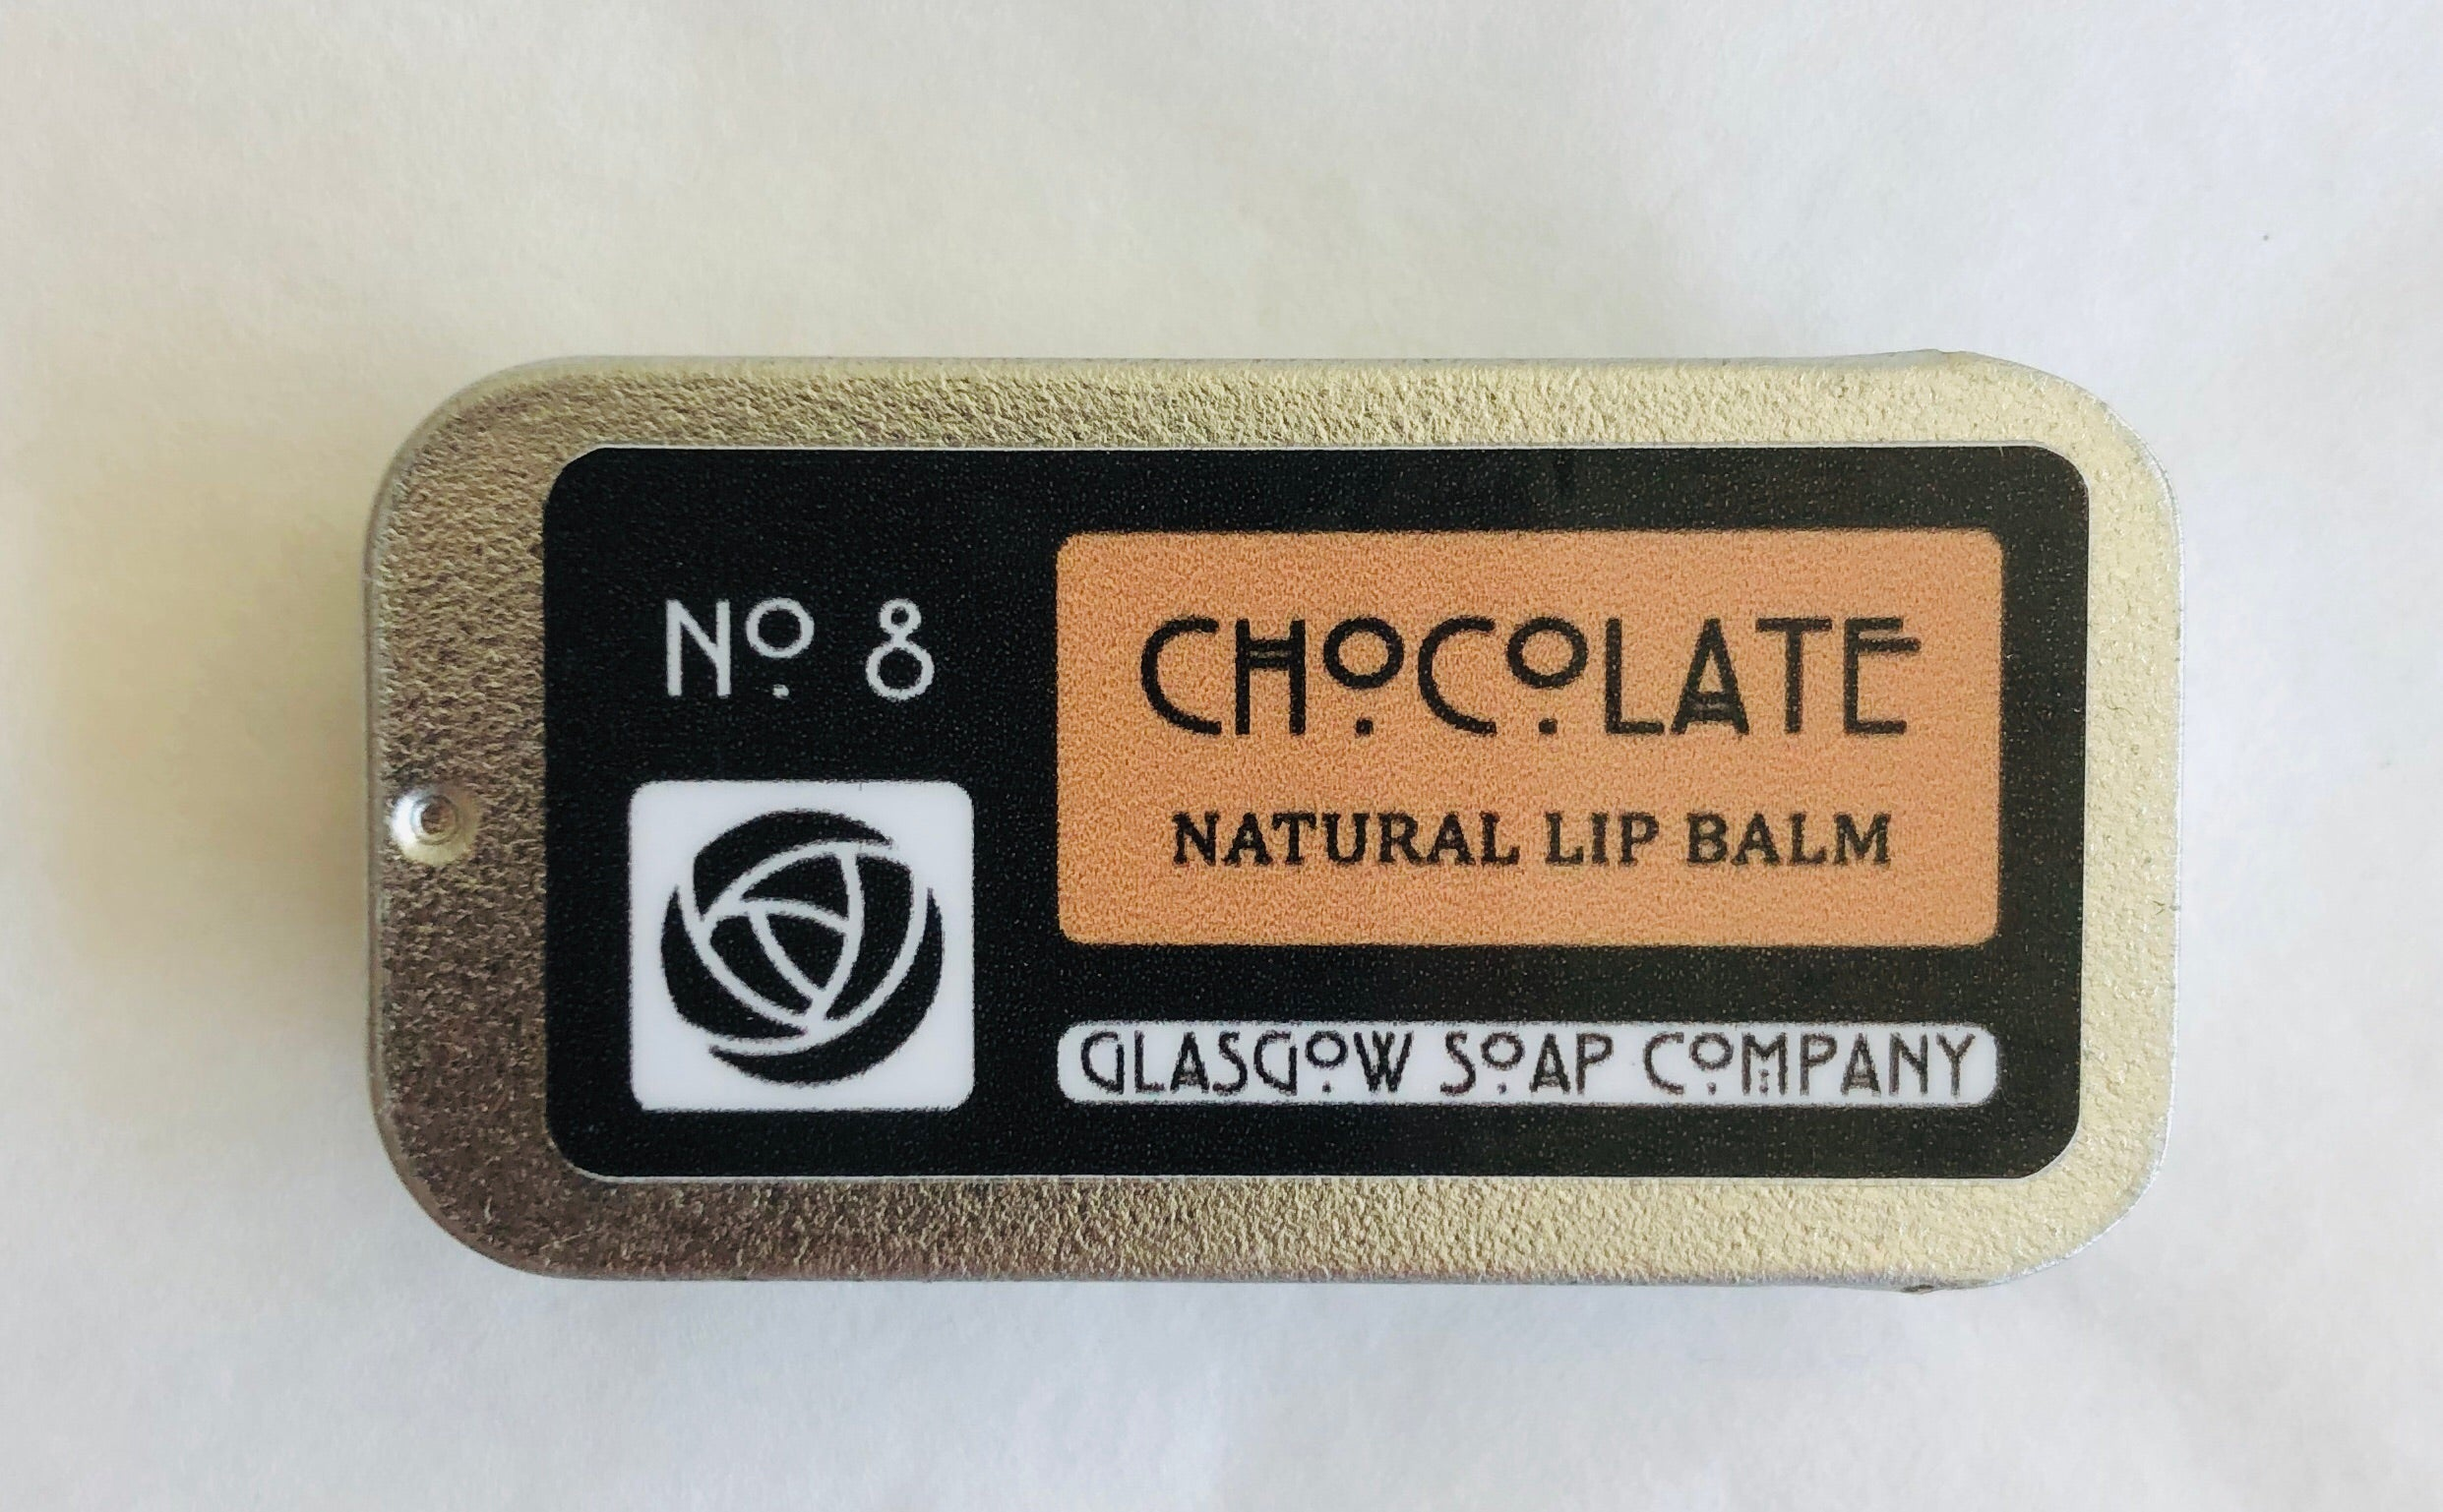 Chocolate Natural Lip Balm